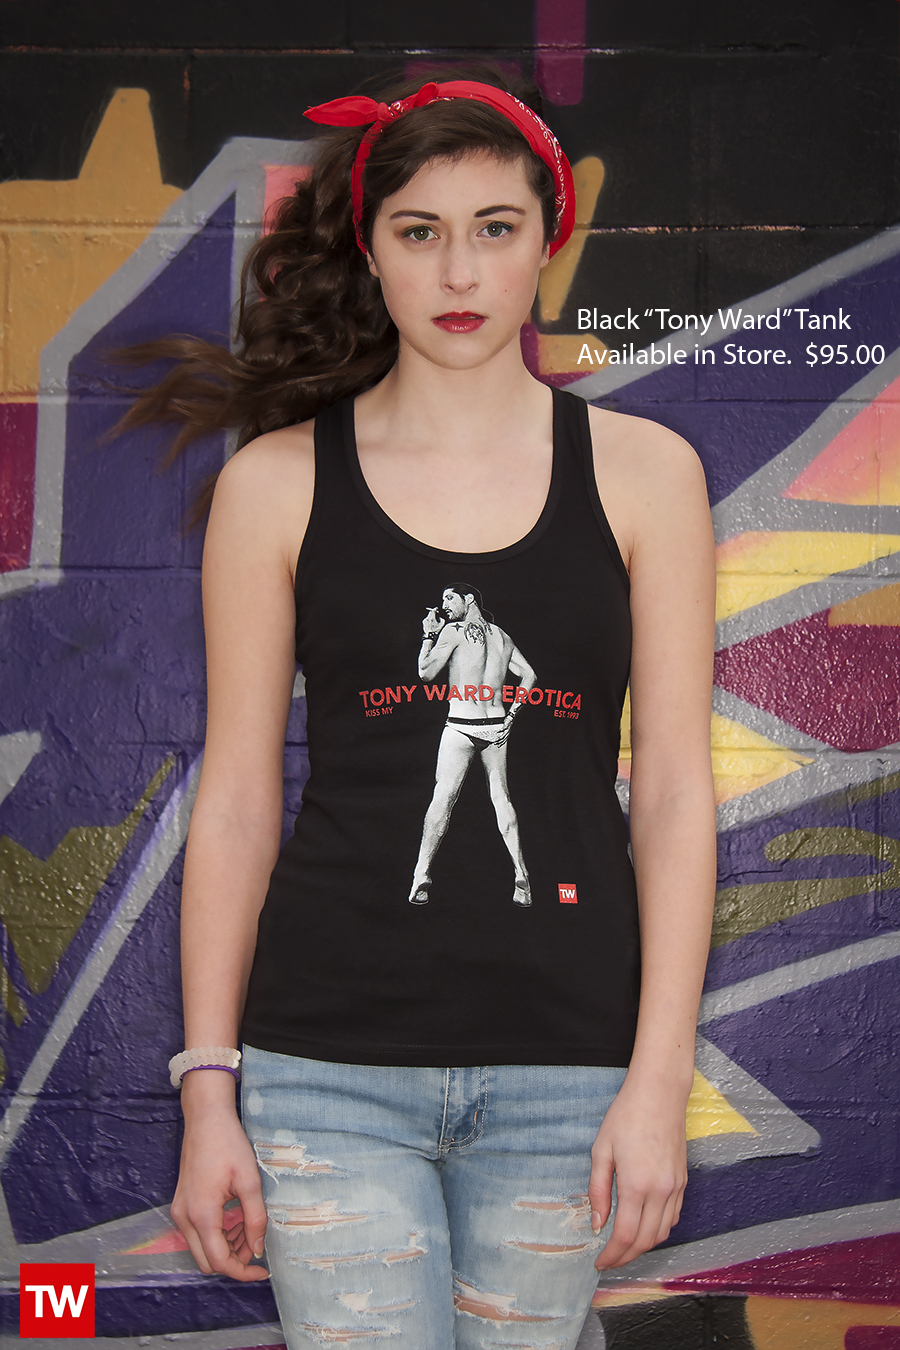 Tony_Ward_Studio_e_commerce_store_t-shirts_black_Kiss_My_tank_sale_model_Caralisa